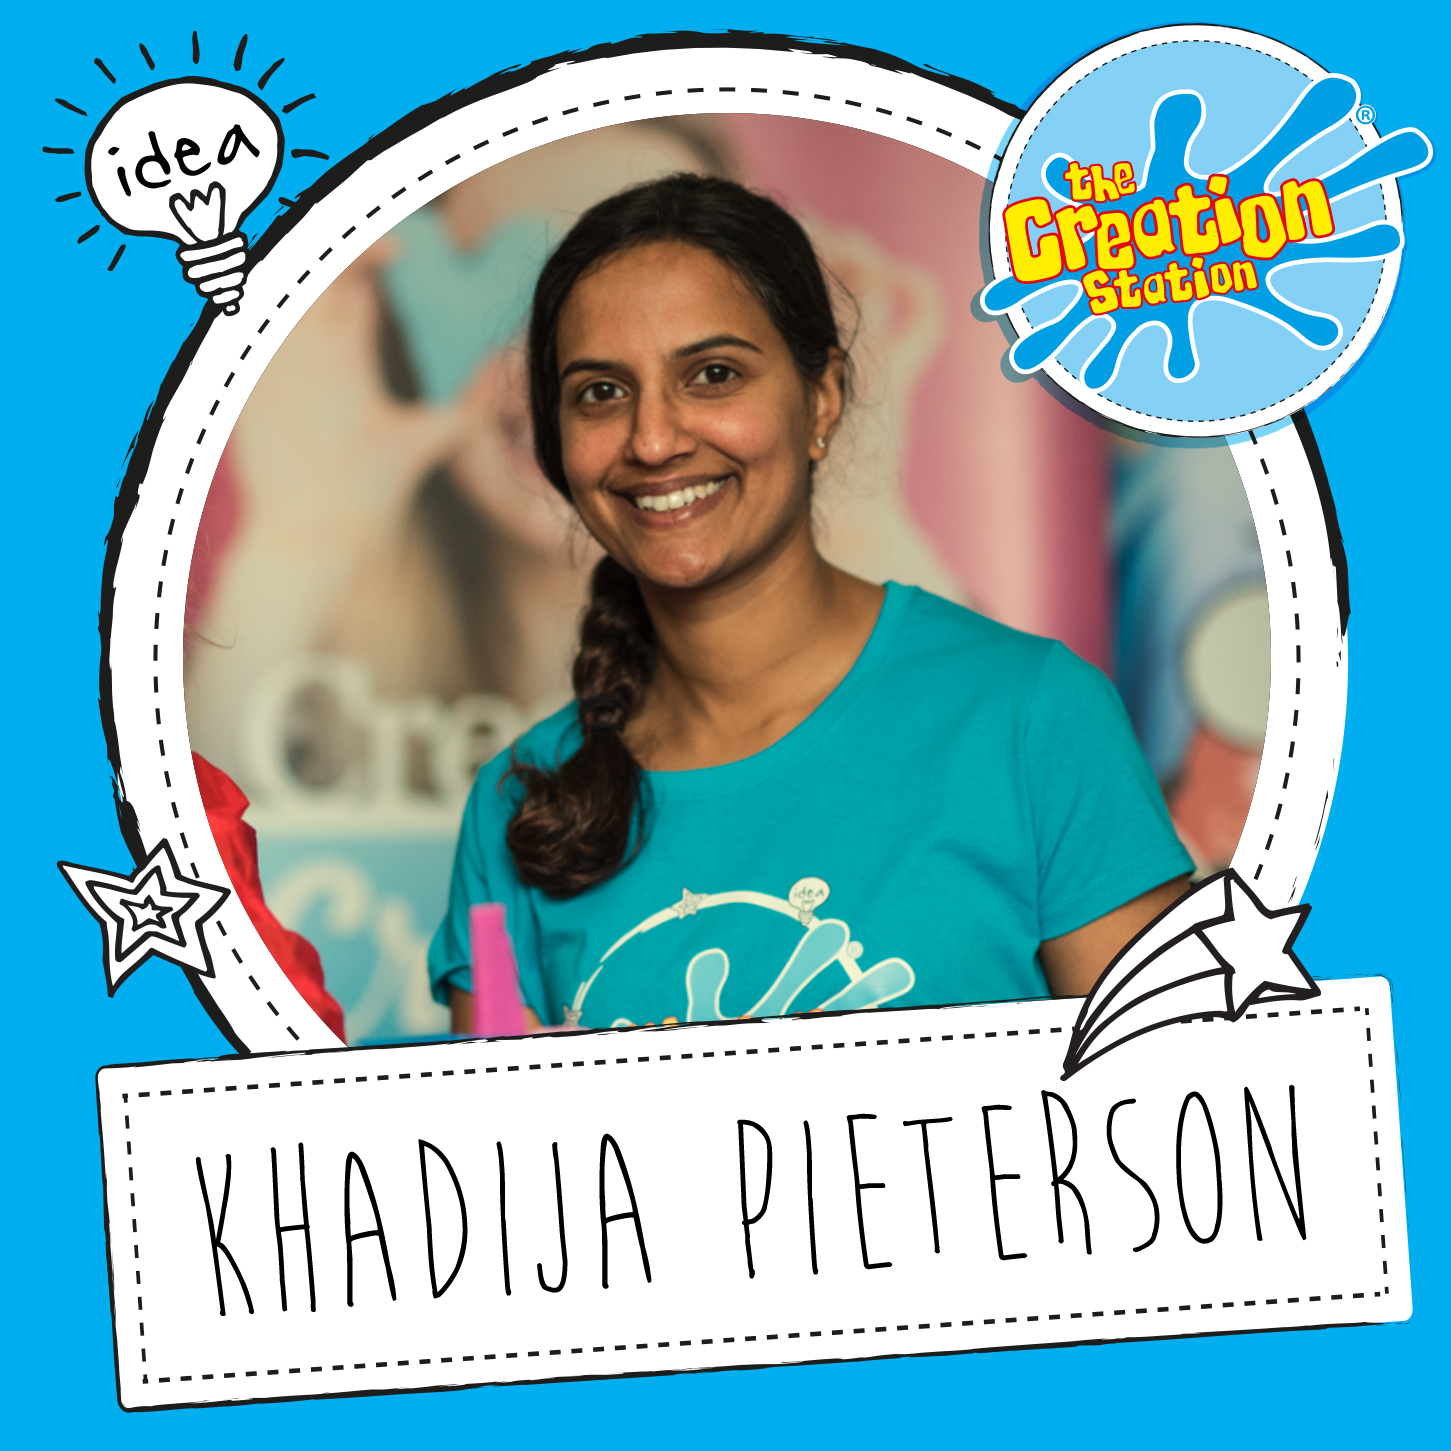 Creation Station franchisee Khadija Pieterson